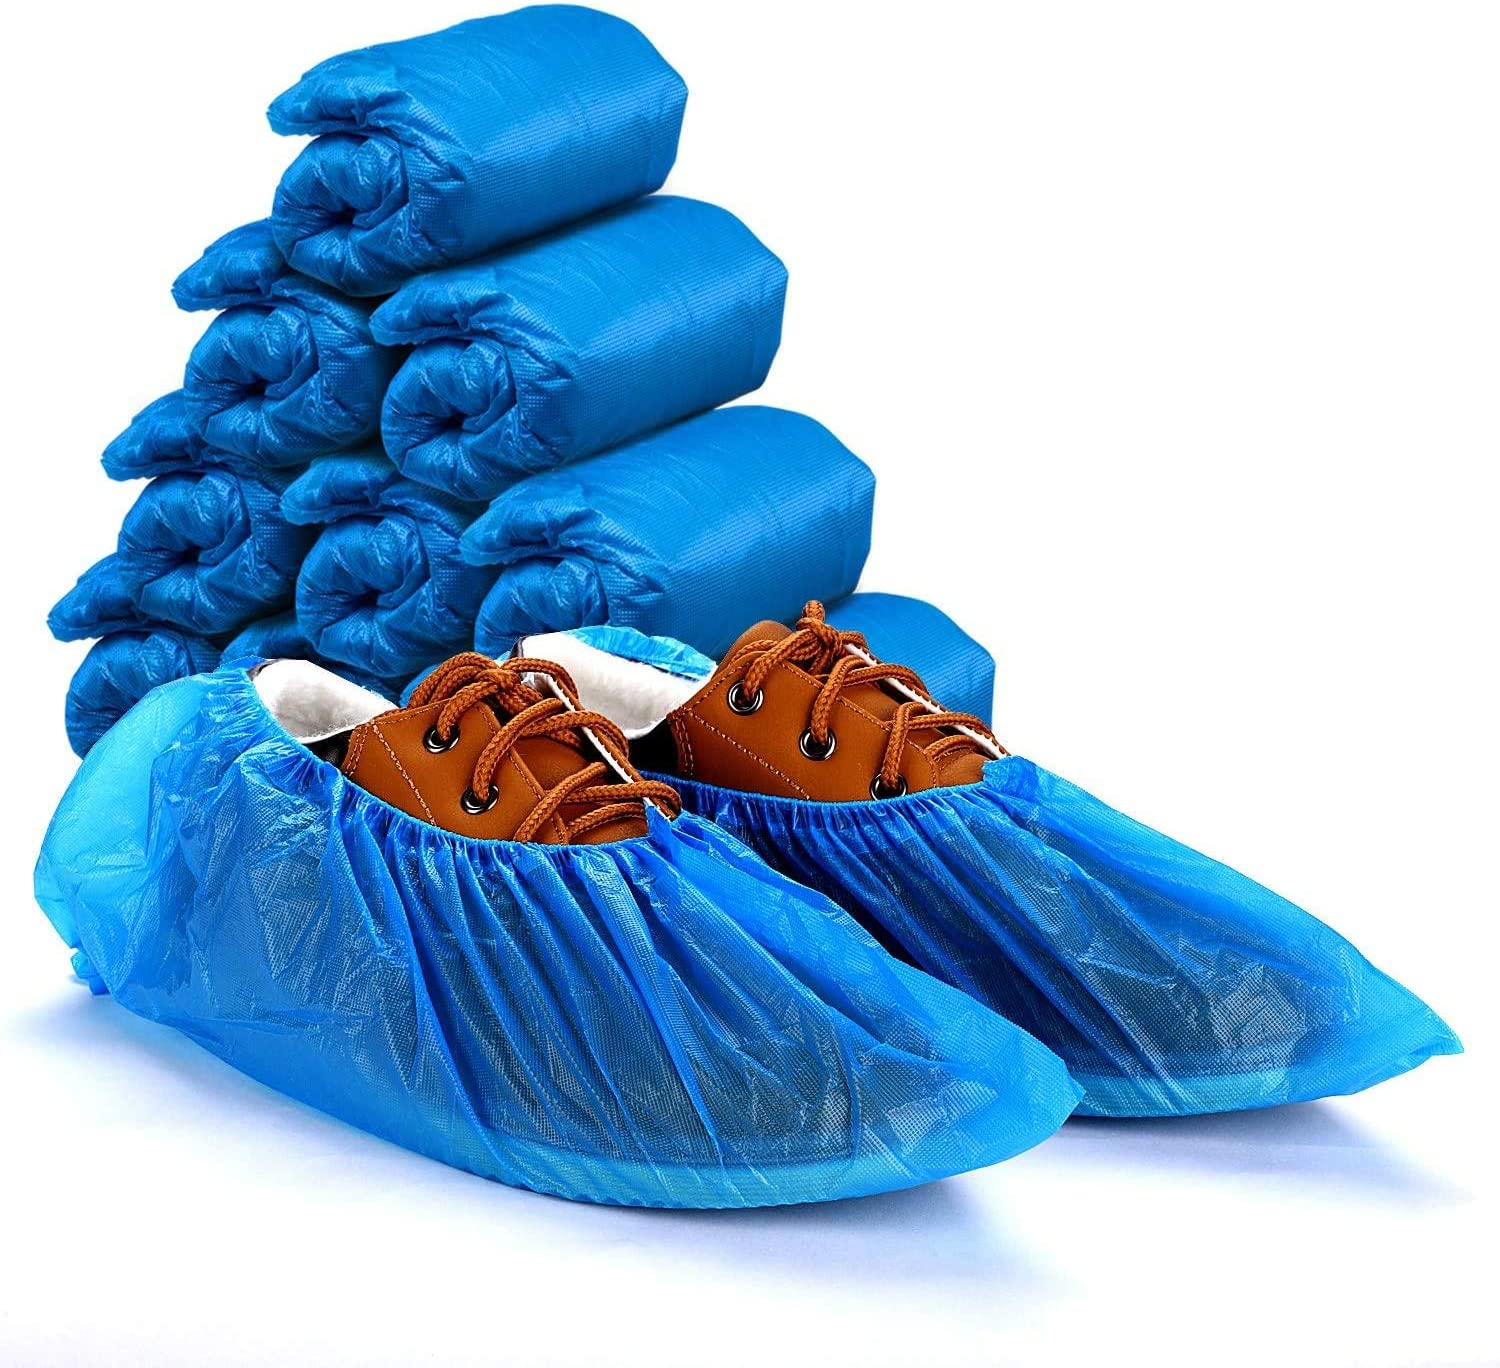 HOUSE DAY Shoe Covers Disposable 100 Pack(50 Pairs) Disposable Shoe Booties Covers Waterproof Non Slip Shoes Protectors Covers Durable Boots Covers,One Size Fits All,Blue